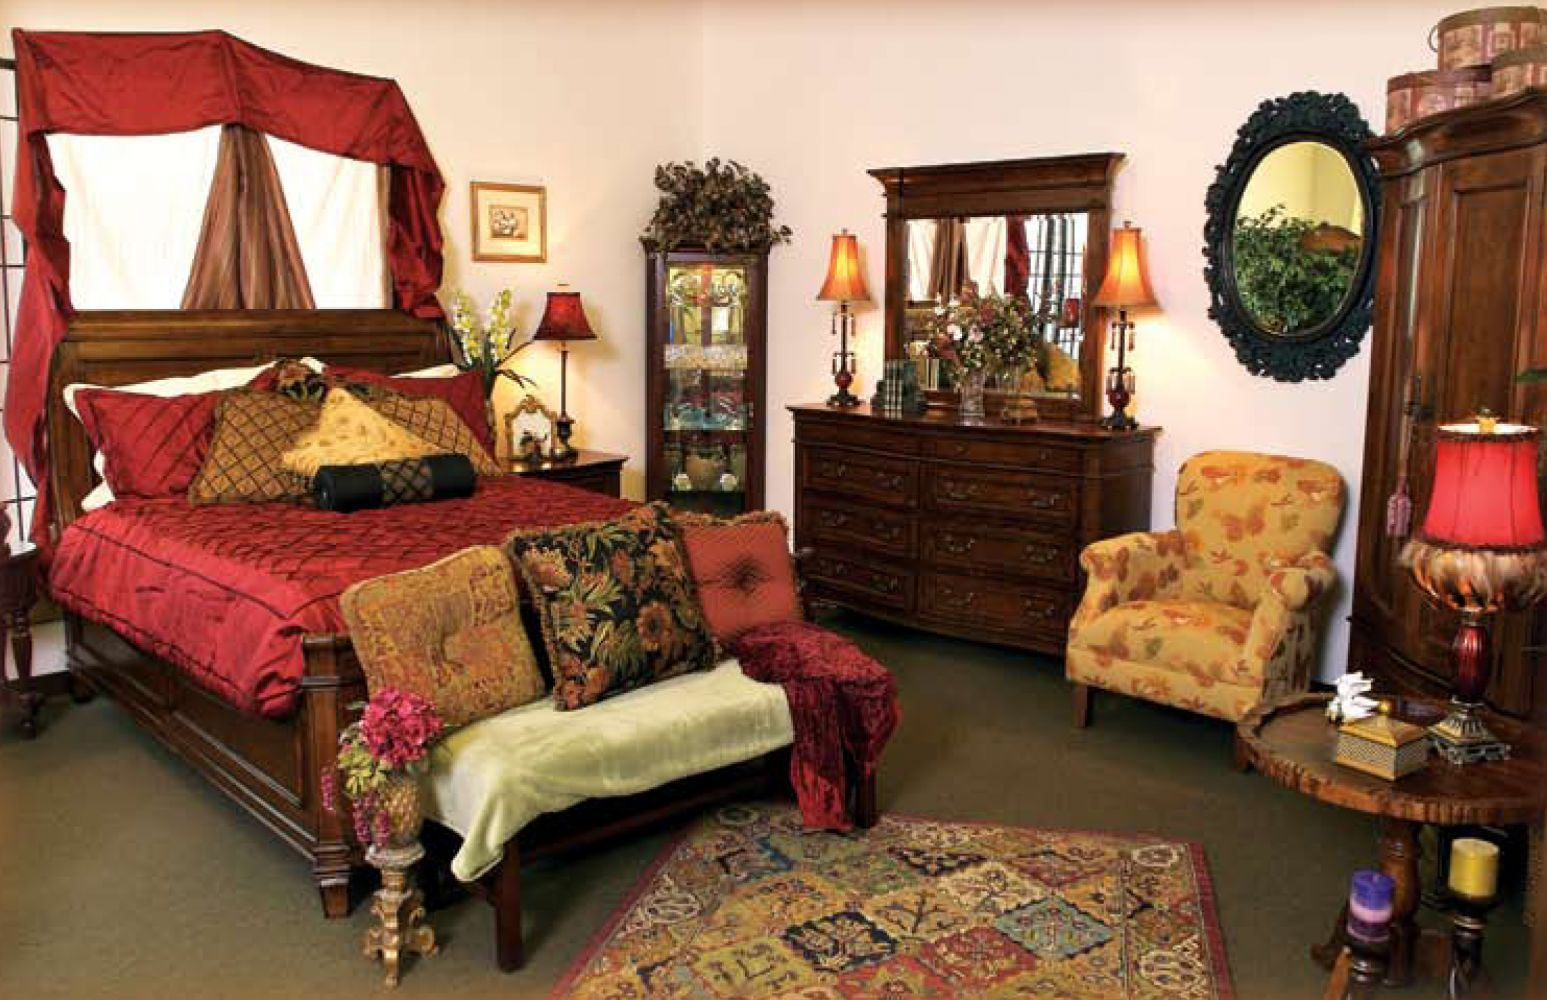 Bedroom display at our home furniture store in Spartanburg  SC. Home Furniture Store in Spartanburg  SC   Carruth Furniture Company